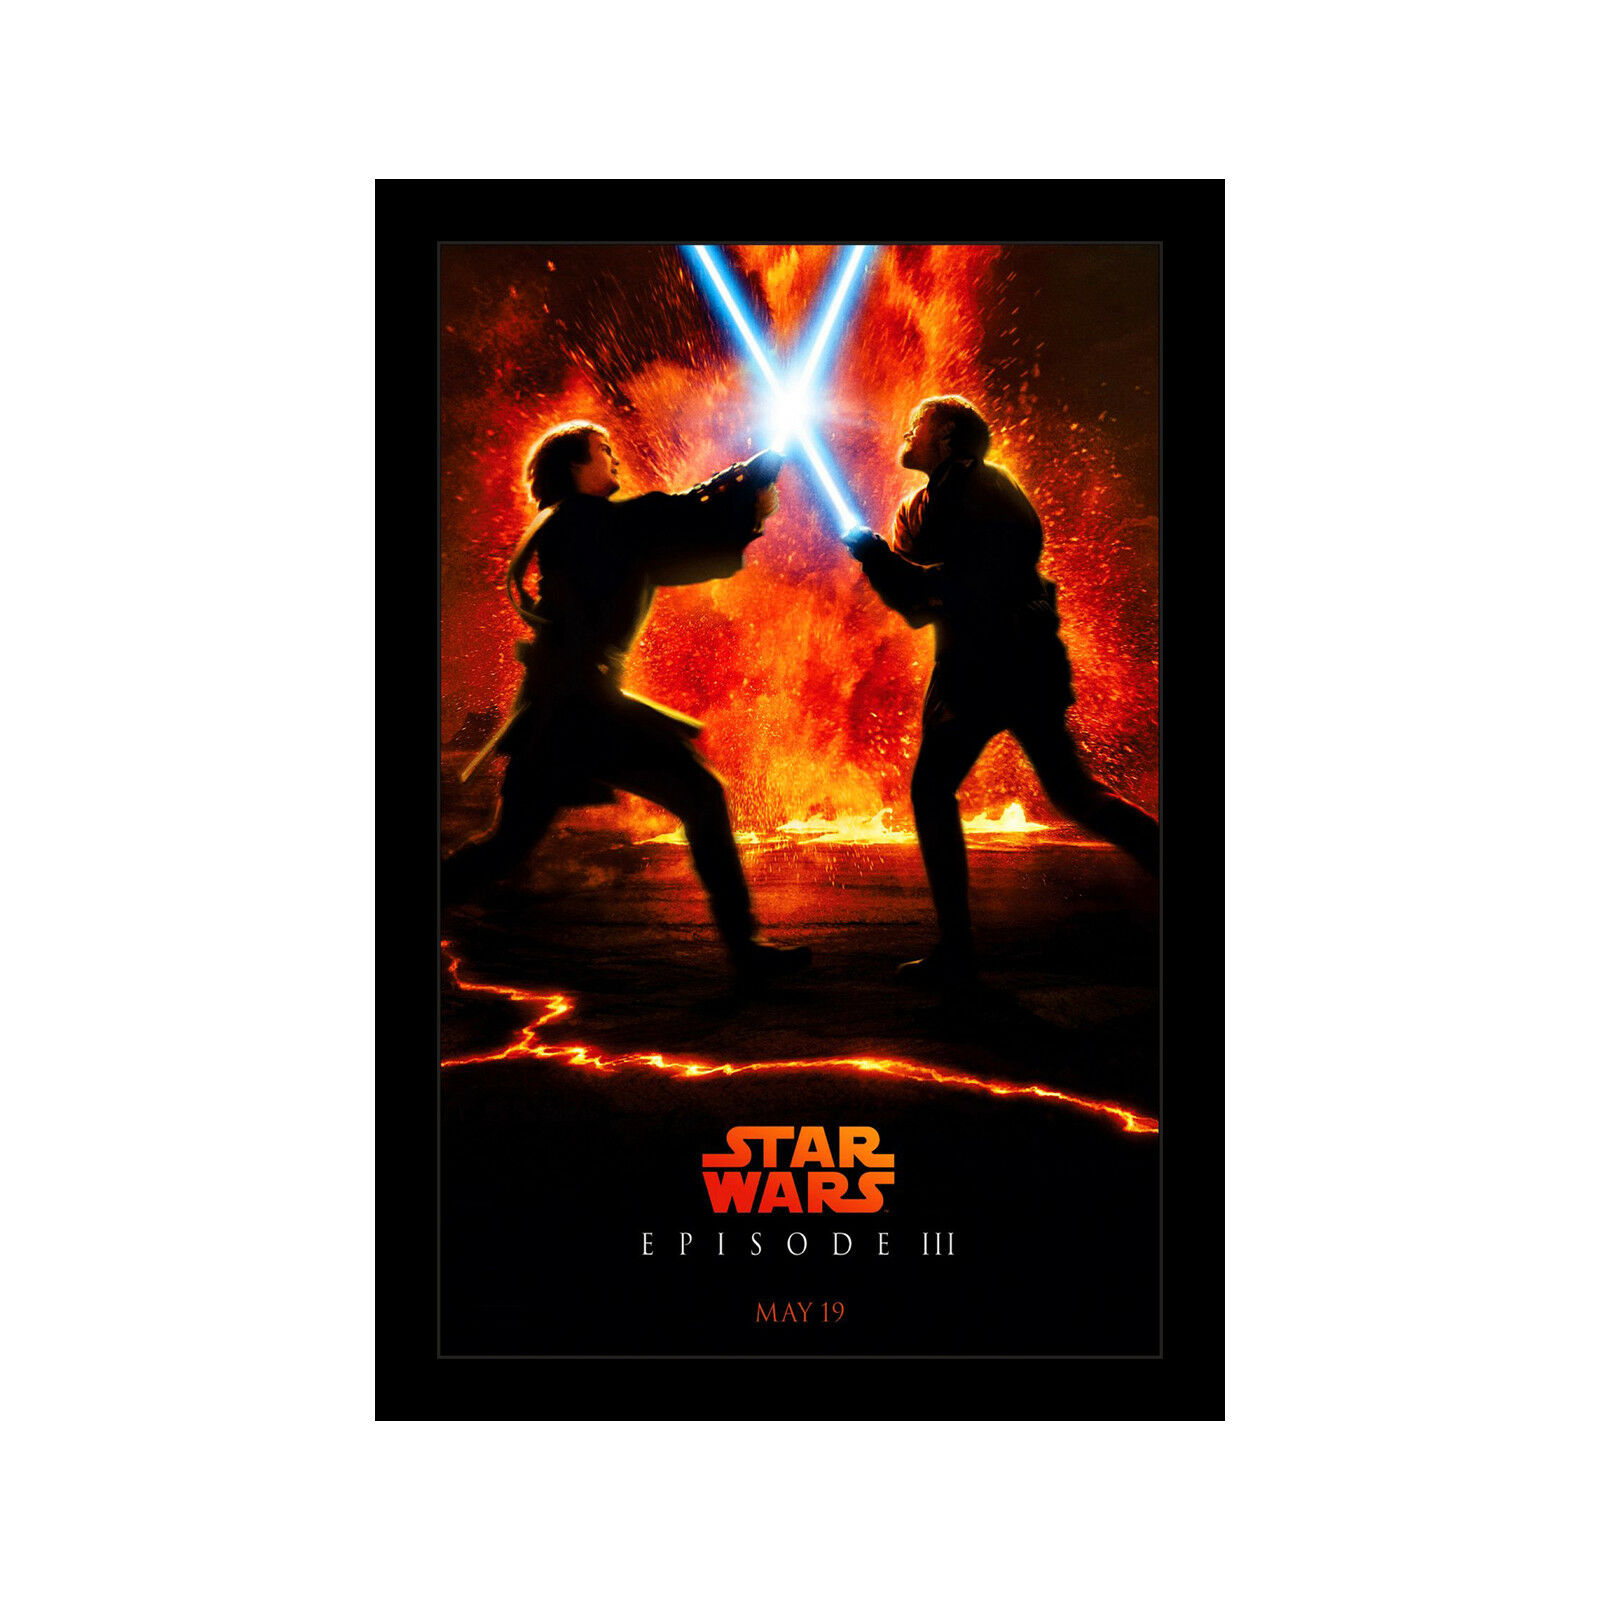 Star Wars Revenge Of The Sith 11x17 Framed Movie Poster By Wallspace For Sale Online